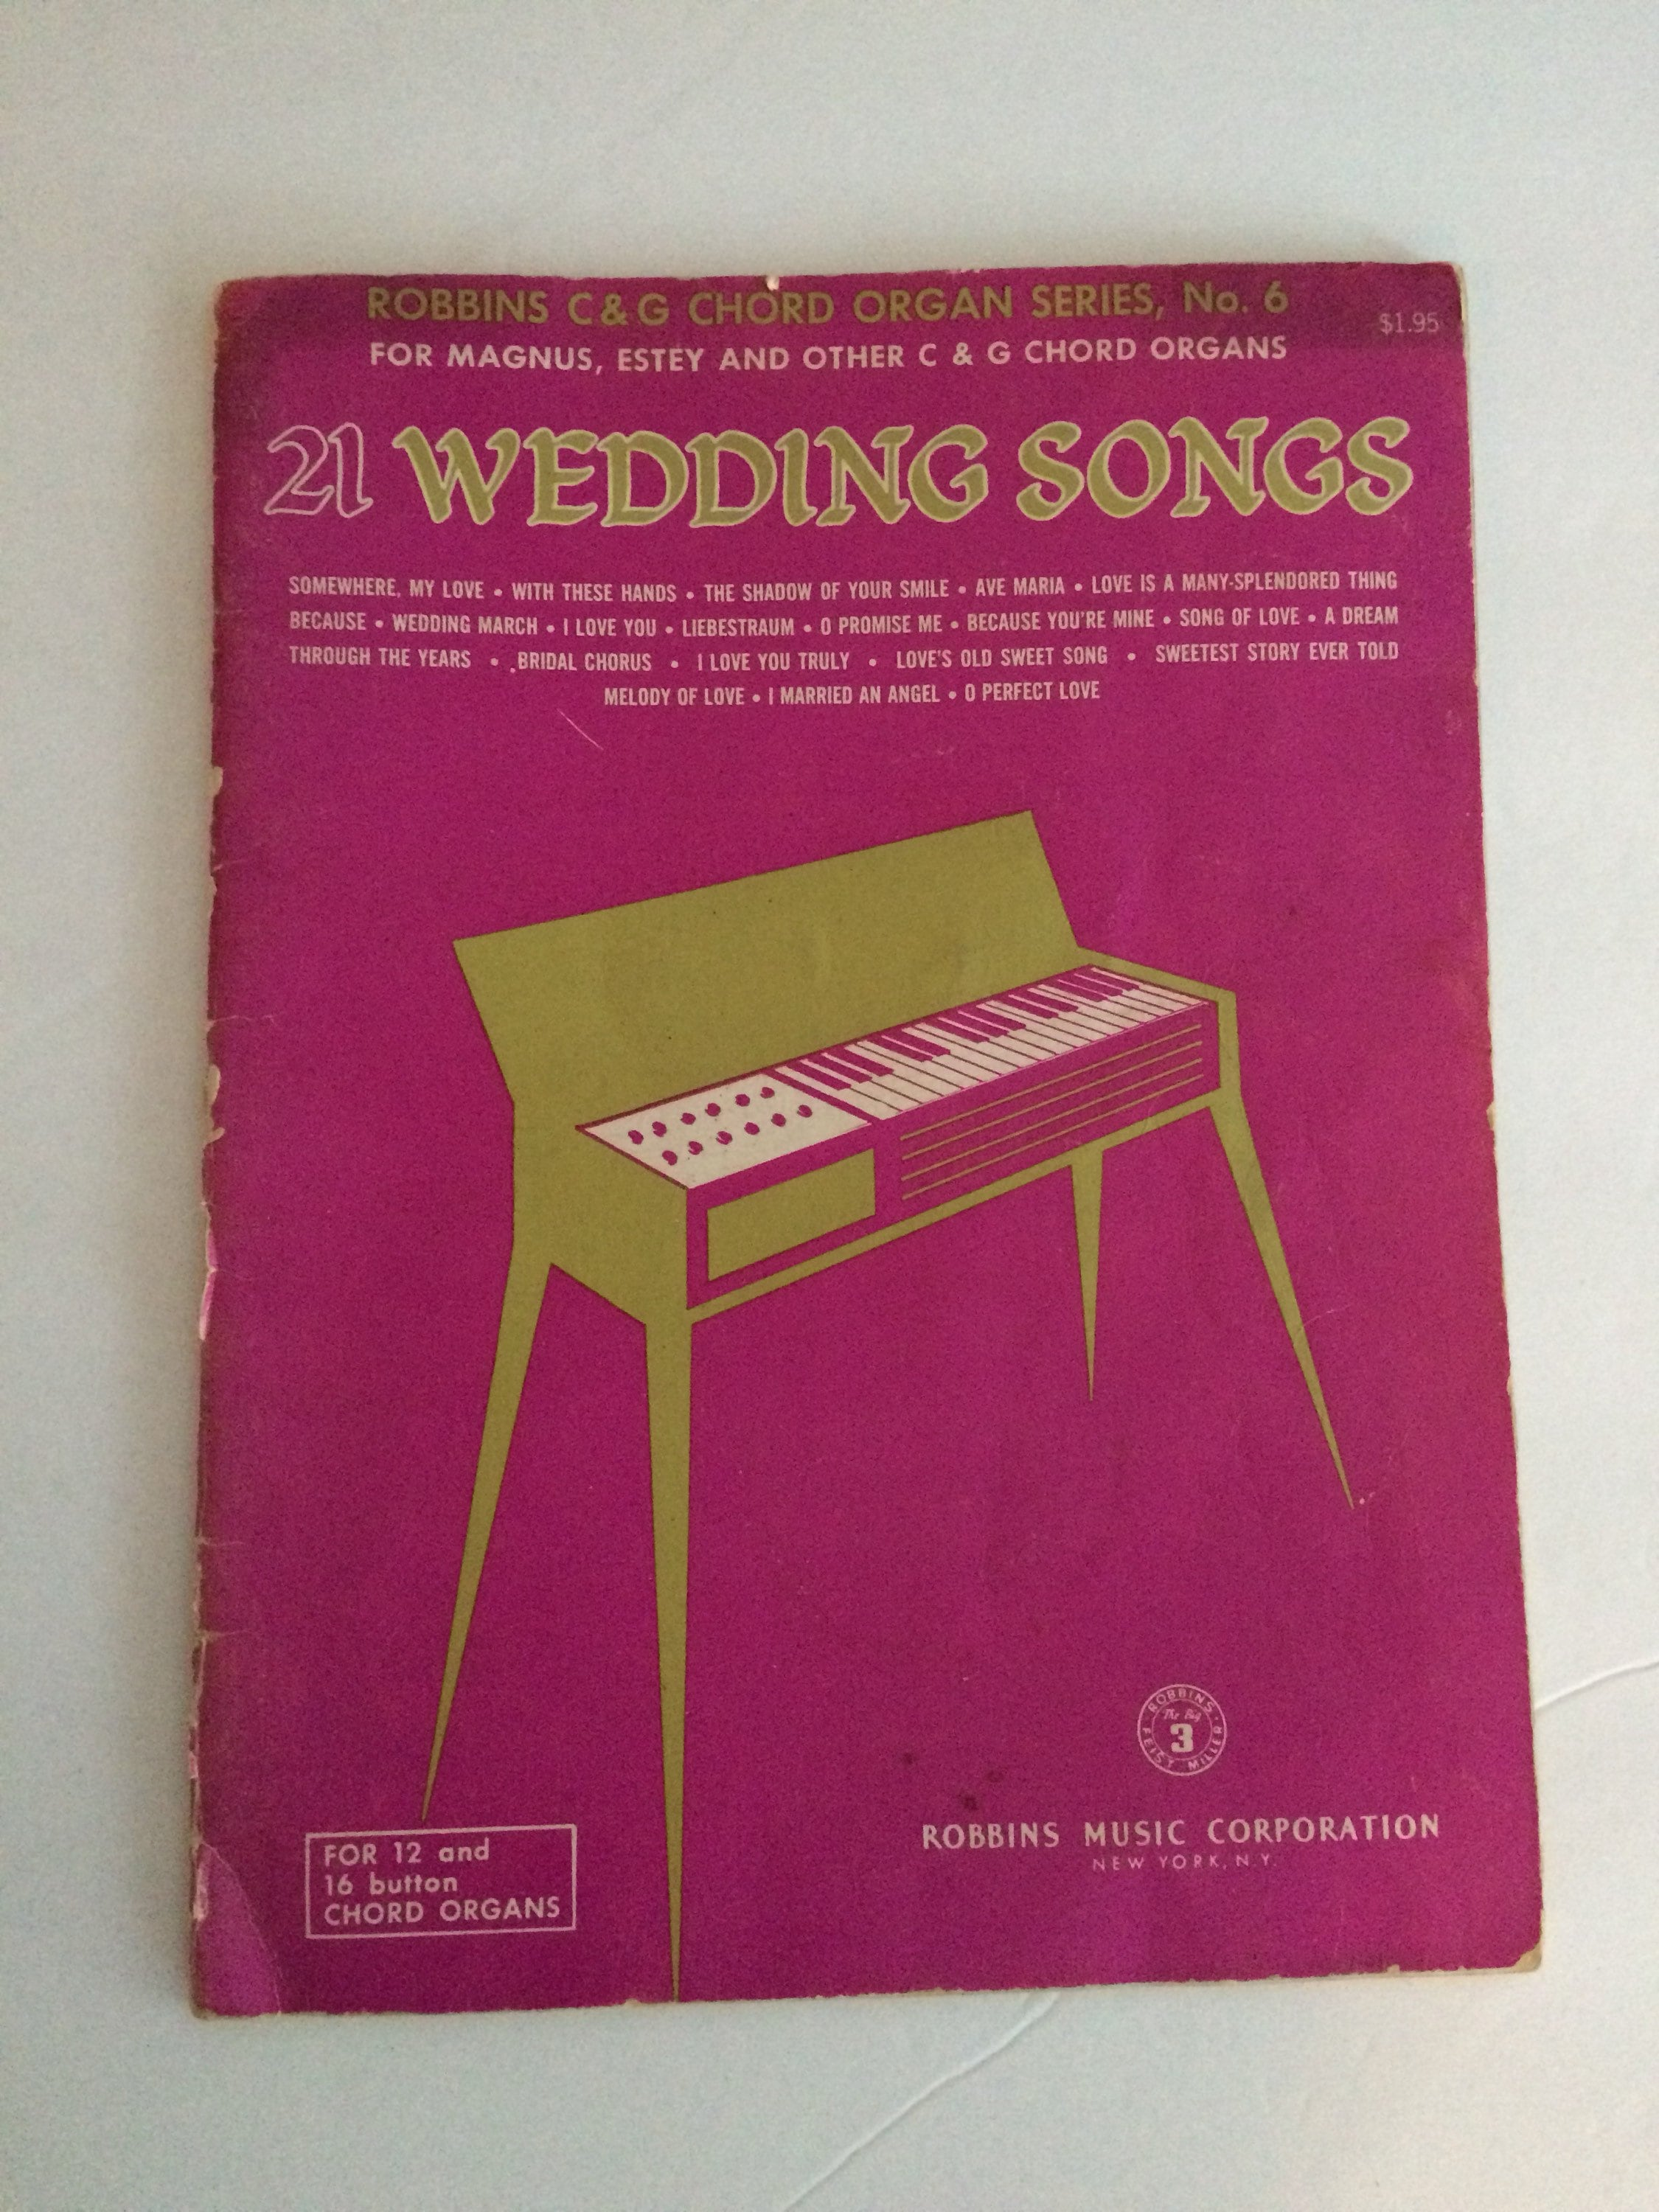 Wedding Songs Sheet Music For 12 And 16 Button Chord Organs Etsy